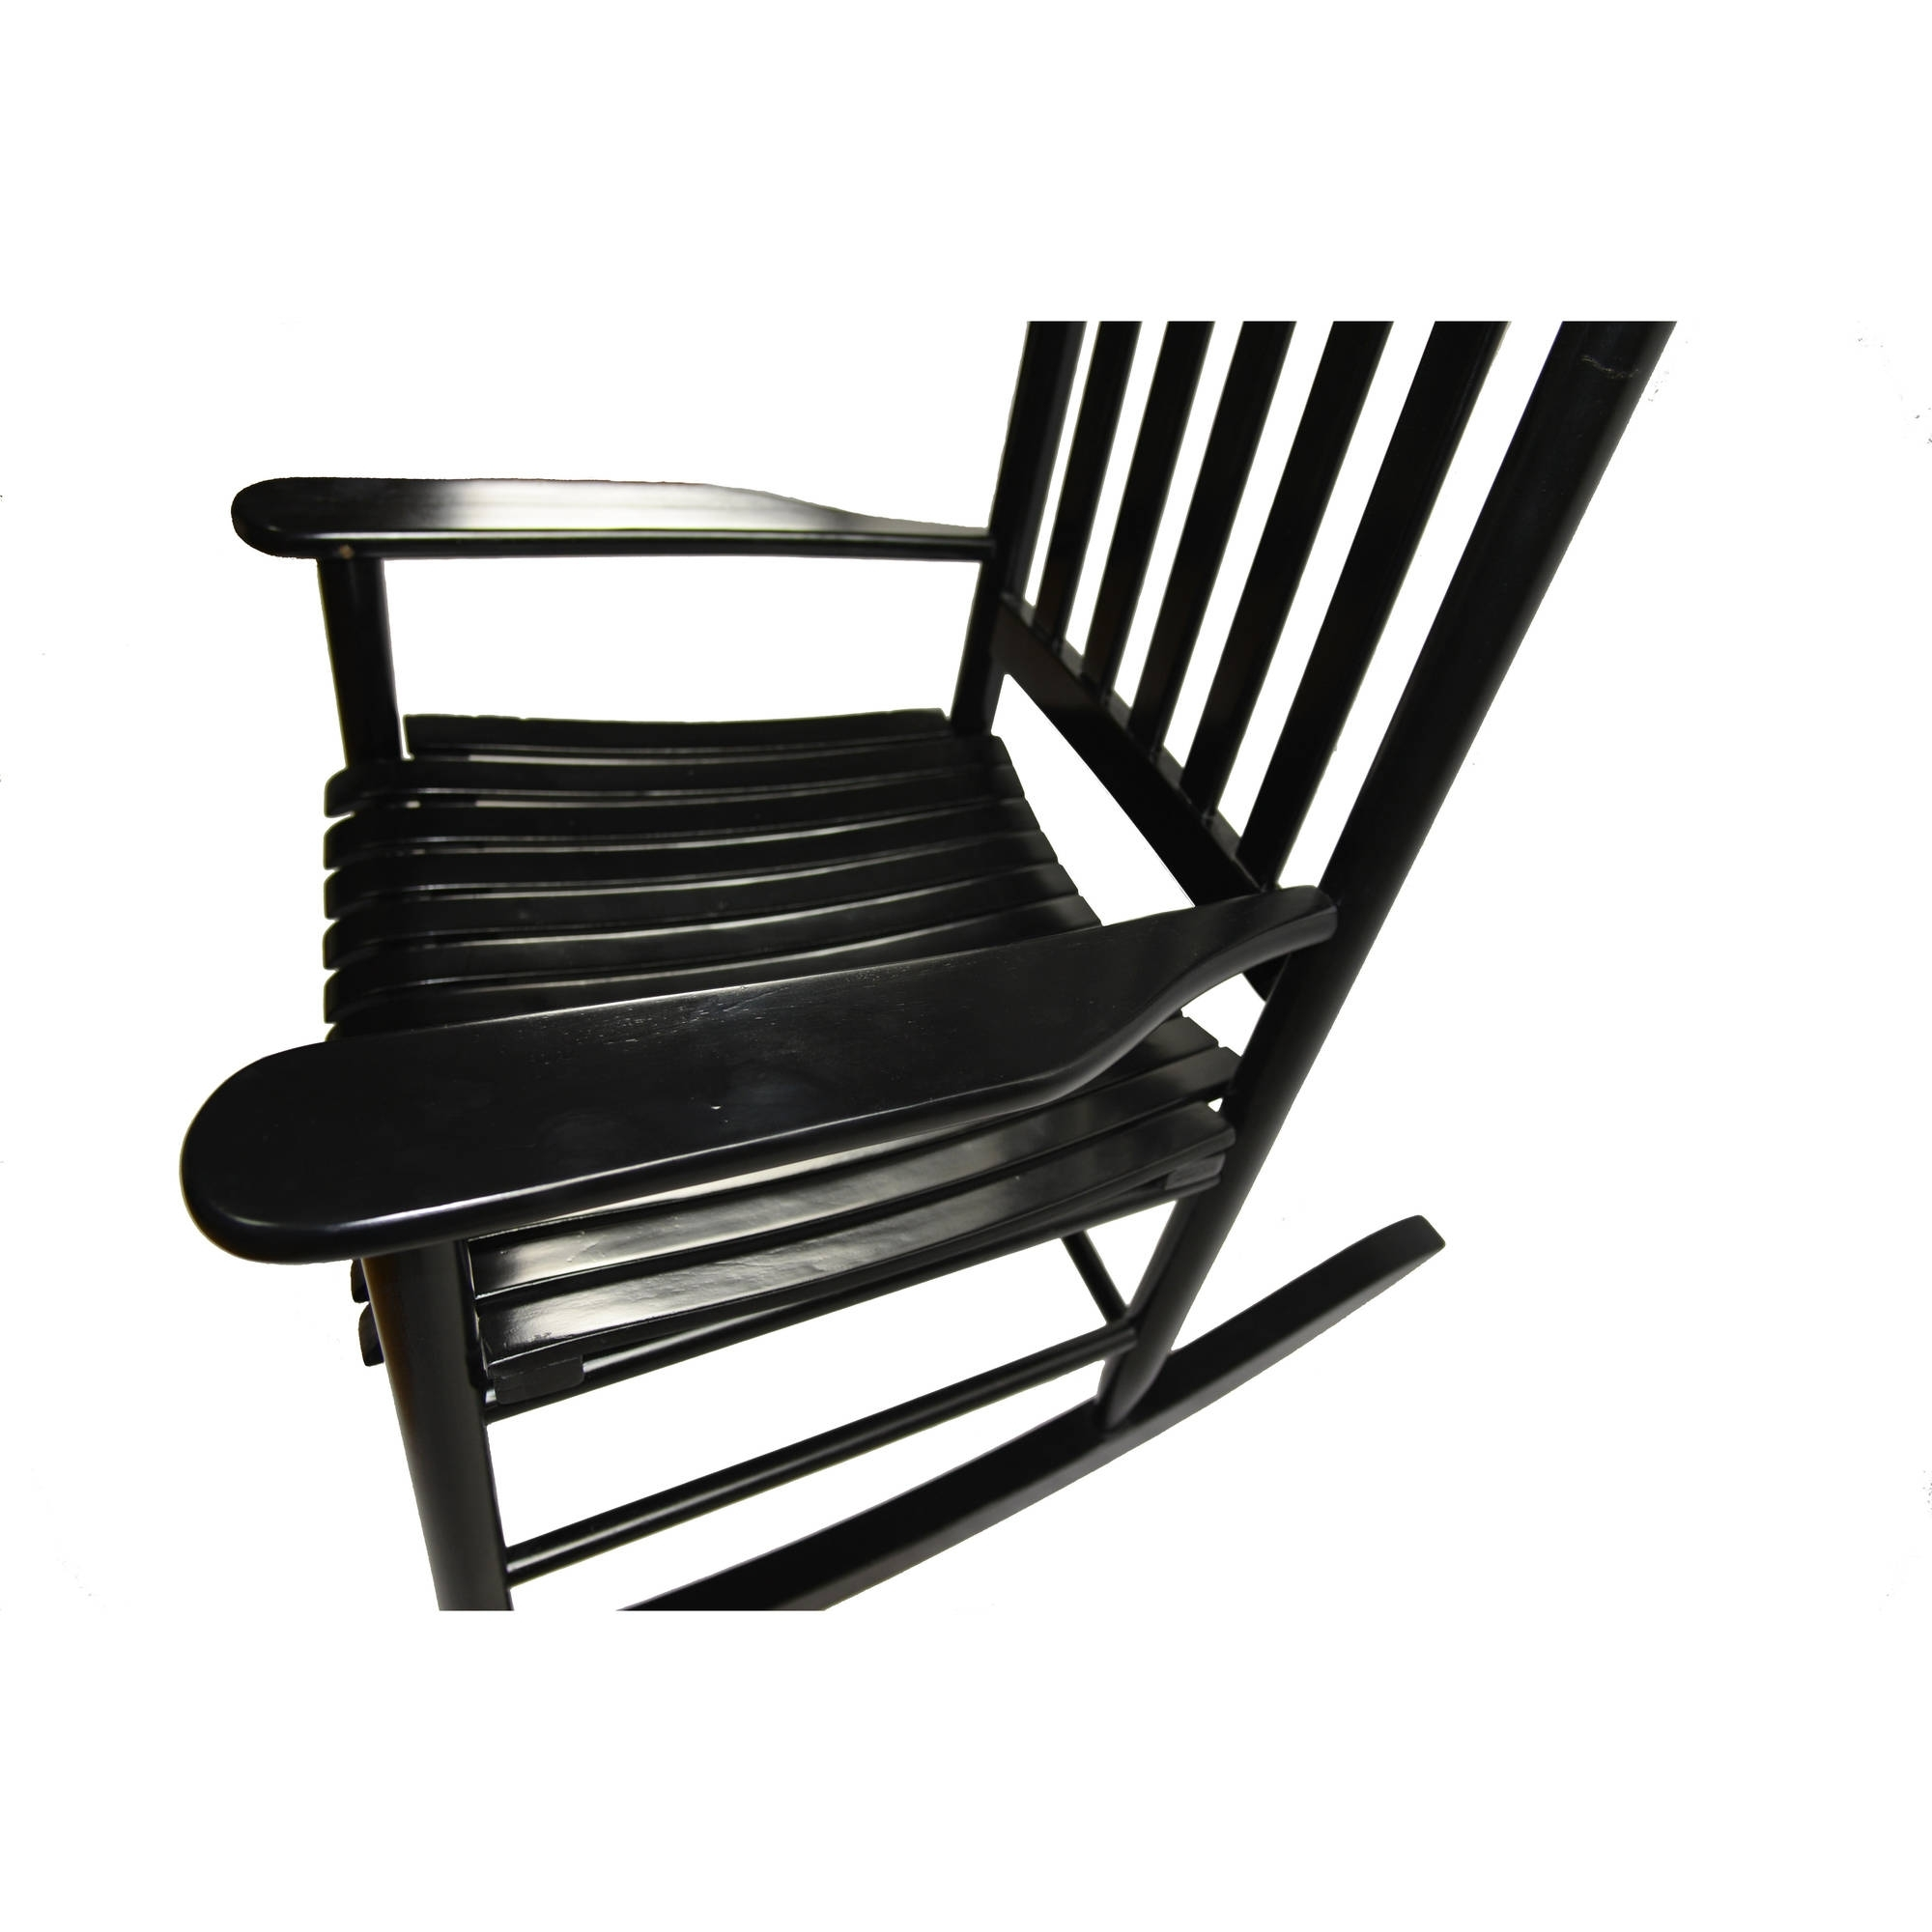 Walmart Rocking Chairs Within Current Mainstays Outdoor Wood Rocking Chair – Walmart (View 13 of 15)